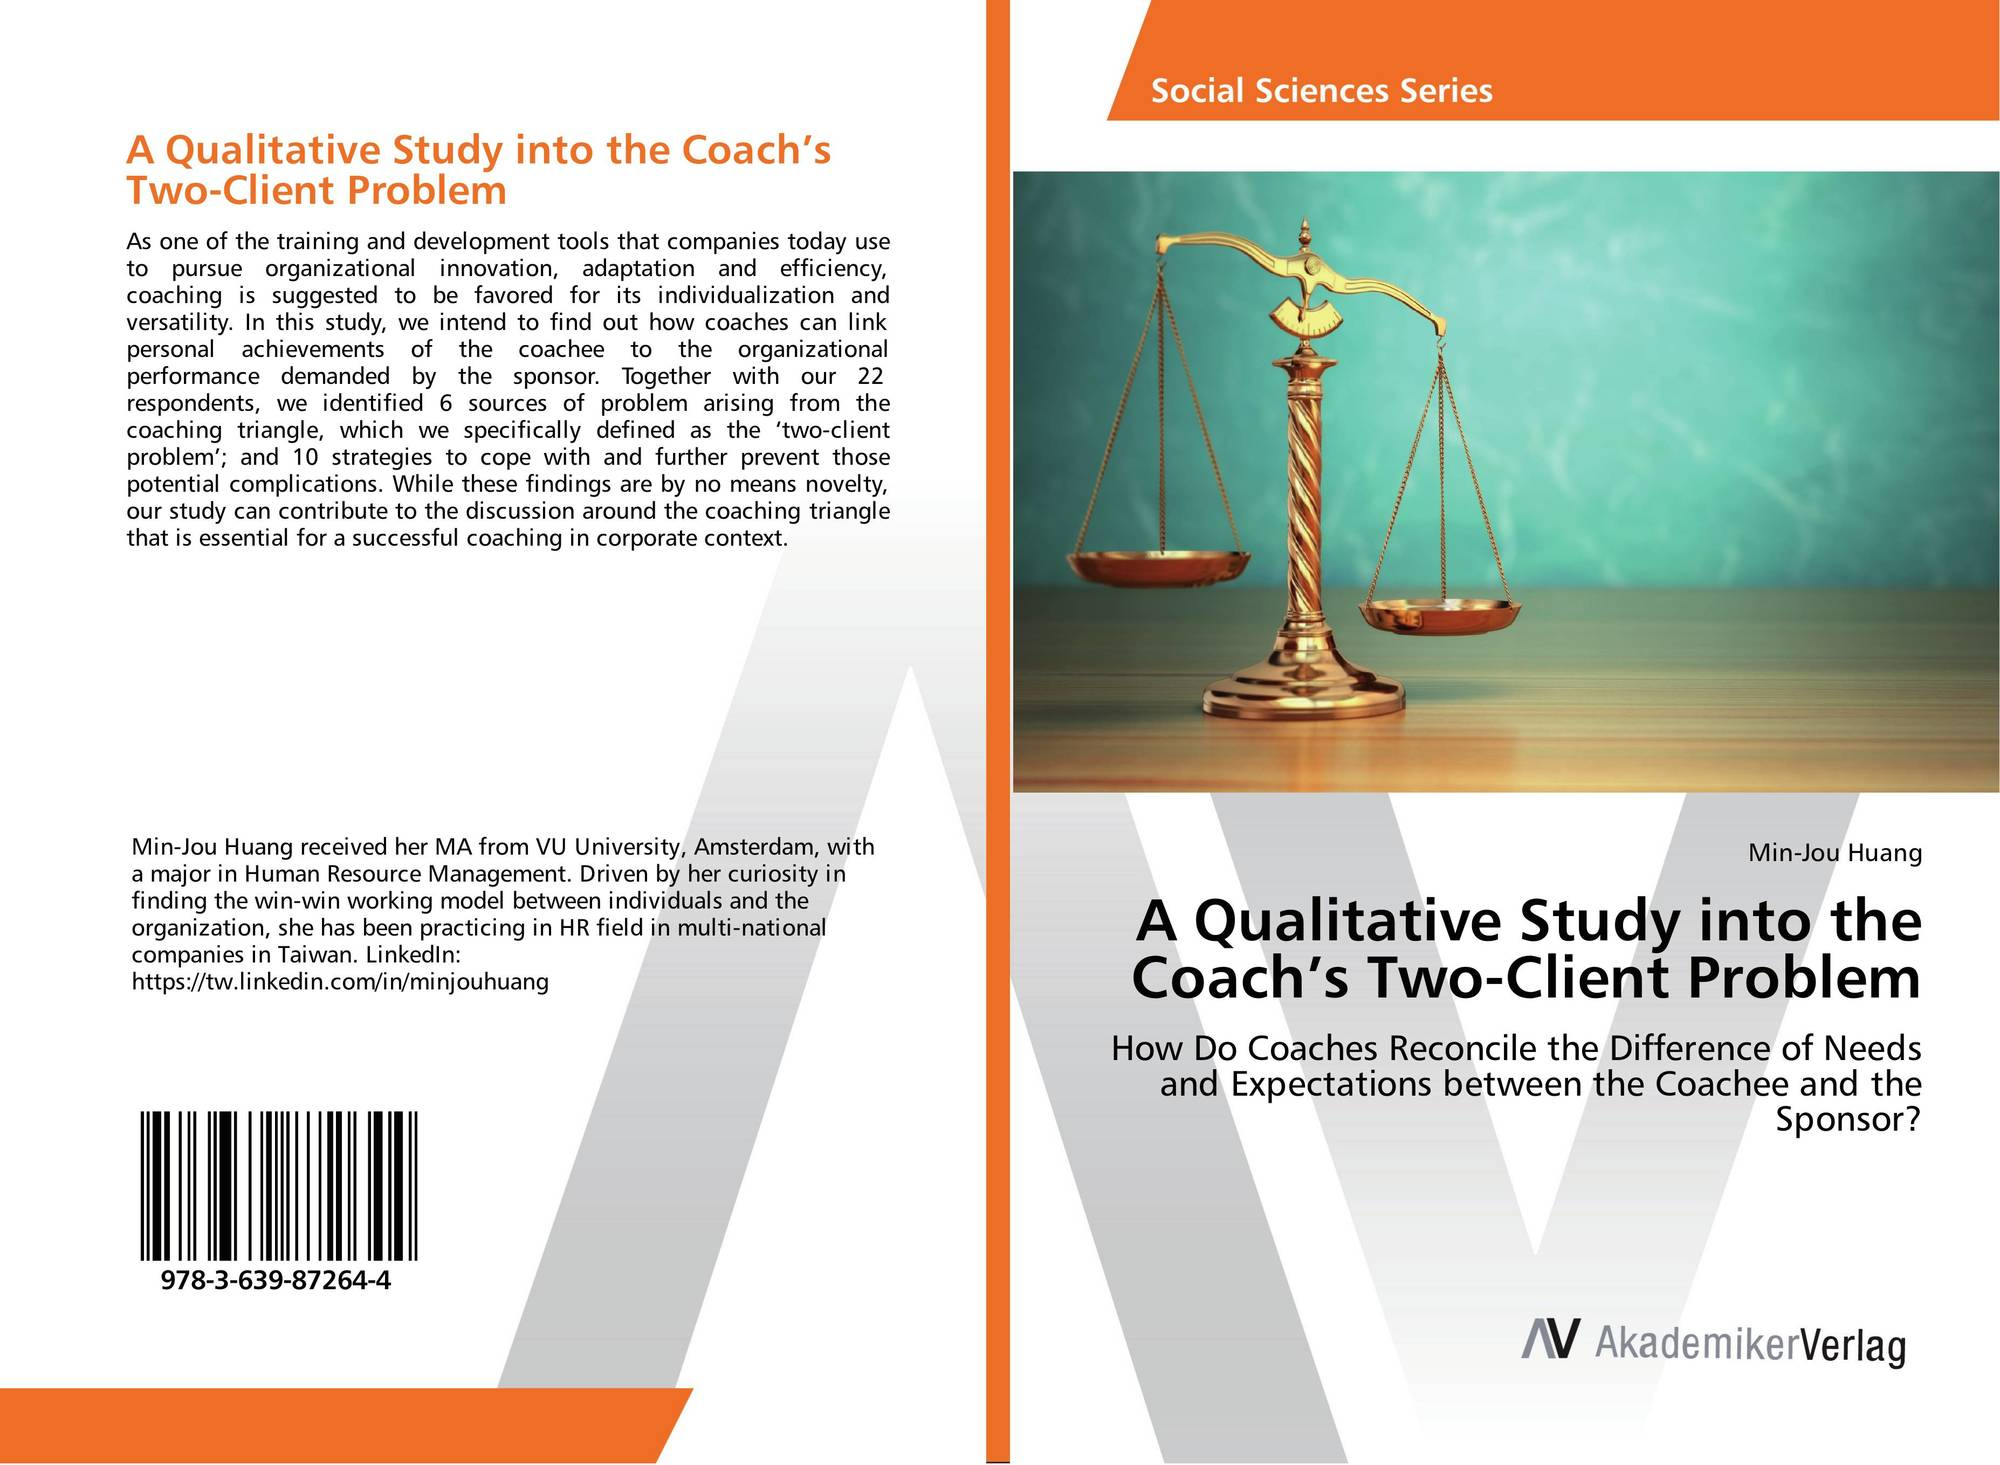 analysing metasynthesis Analysing metasynthesis 2003: 47) note, the division of quantitative from qualitative paradigms is unhelpful and the different views of knowledge among qualitative researchers are not easy to gy: naive realism real reality but apprehendible (equates to naive realism).